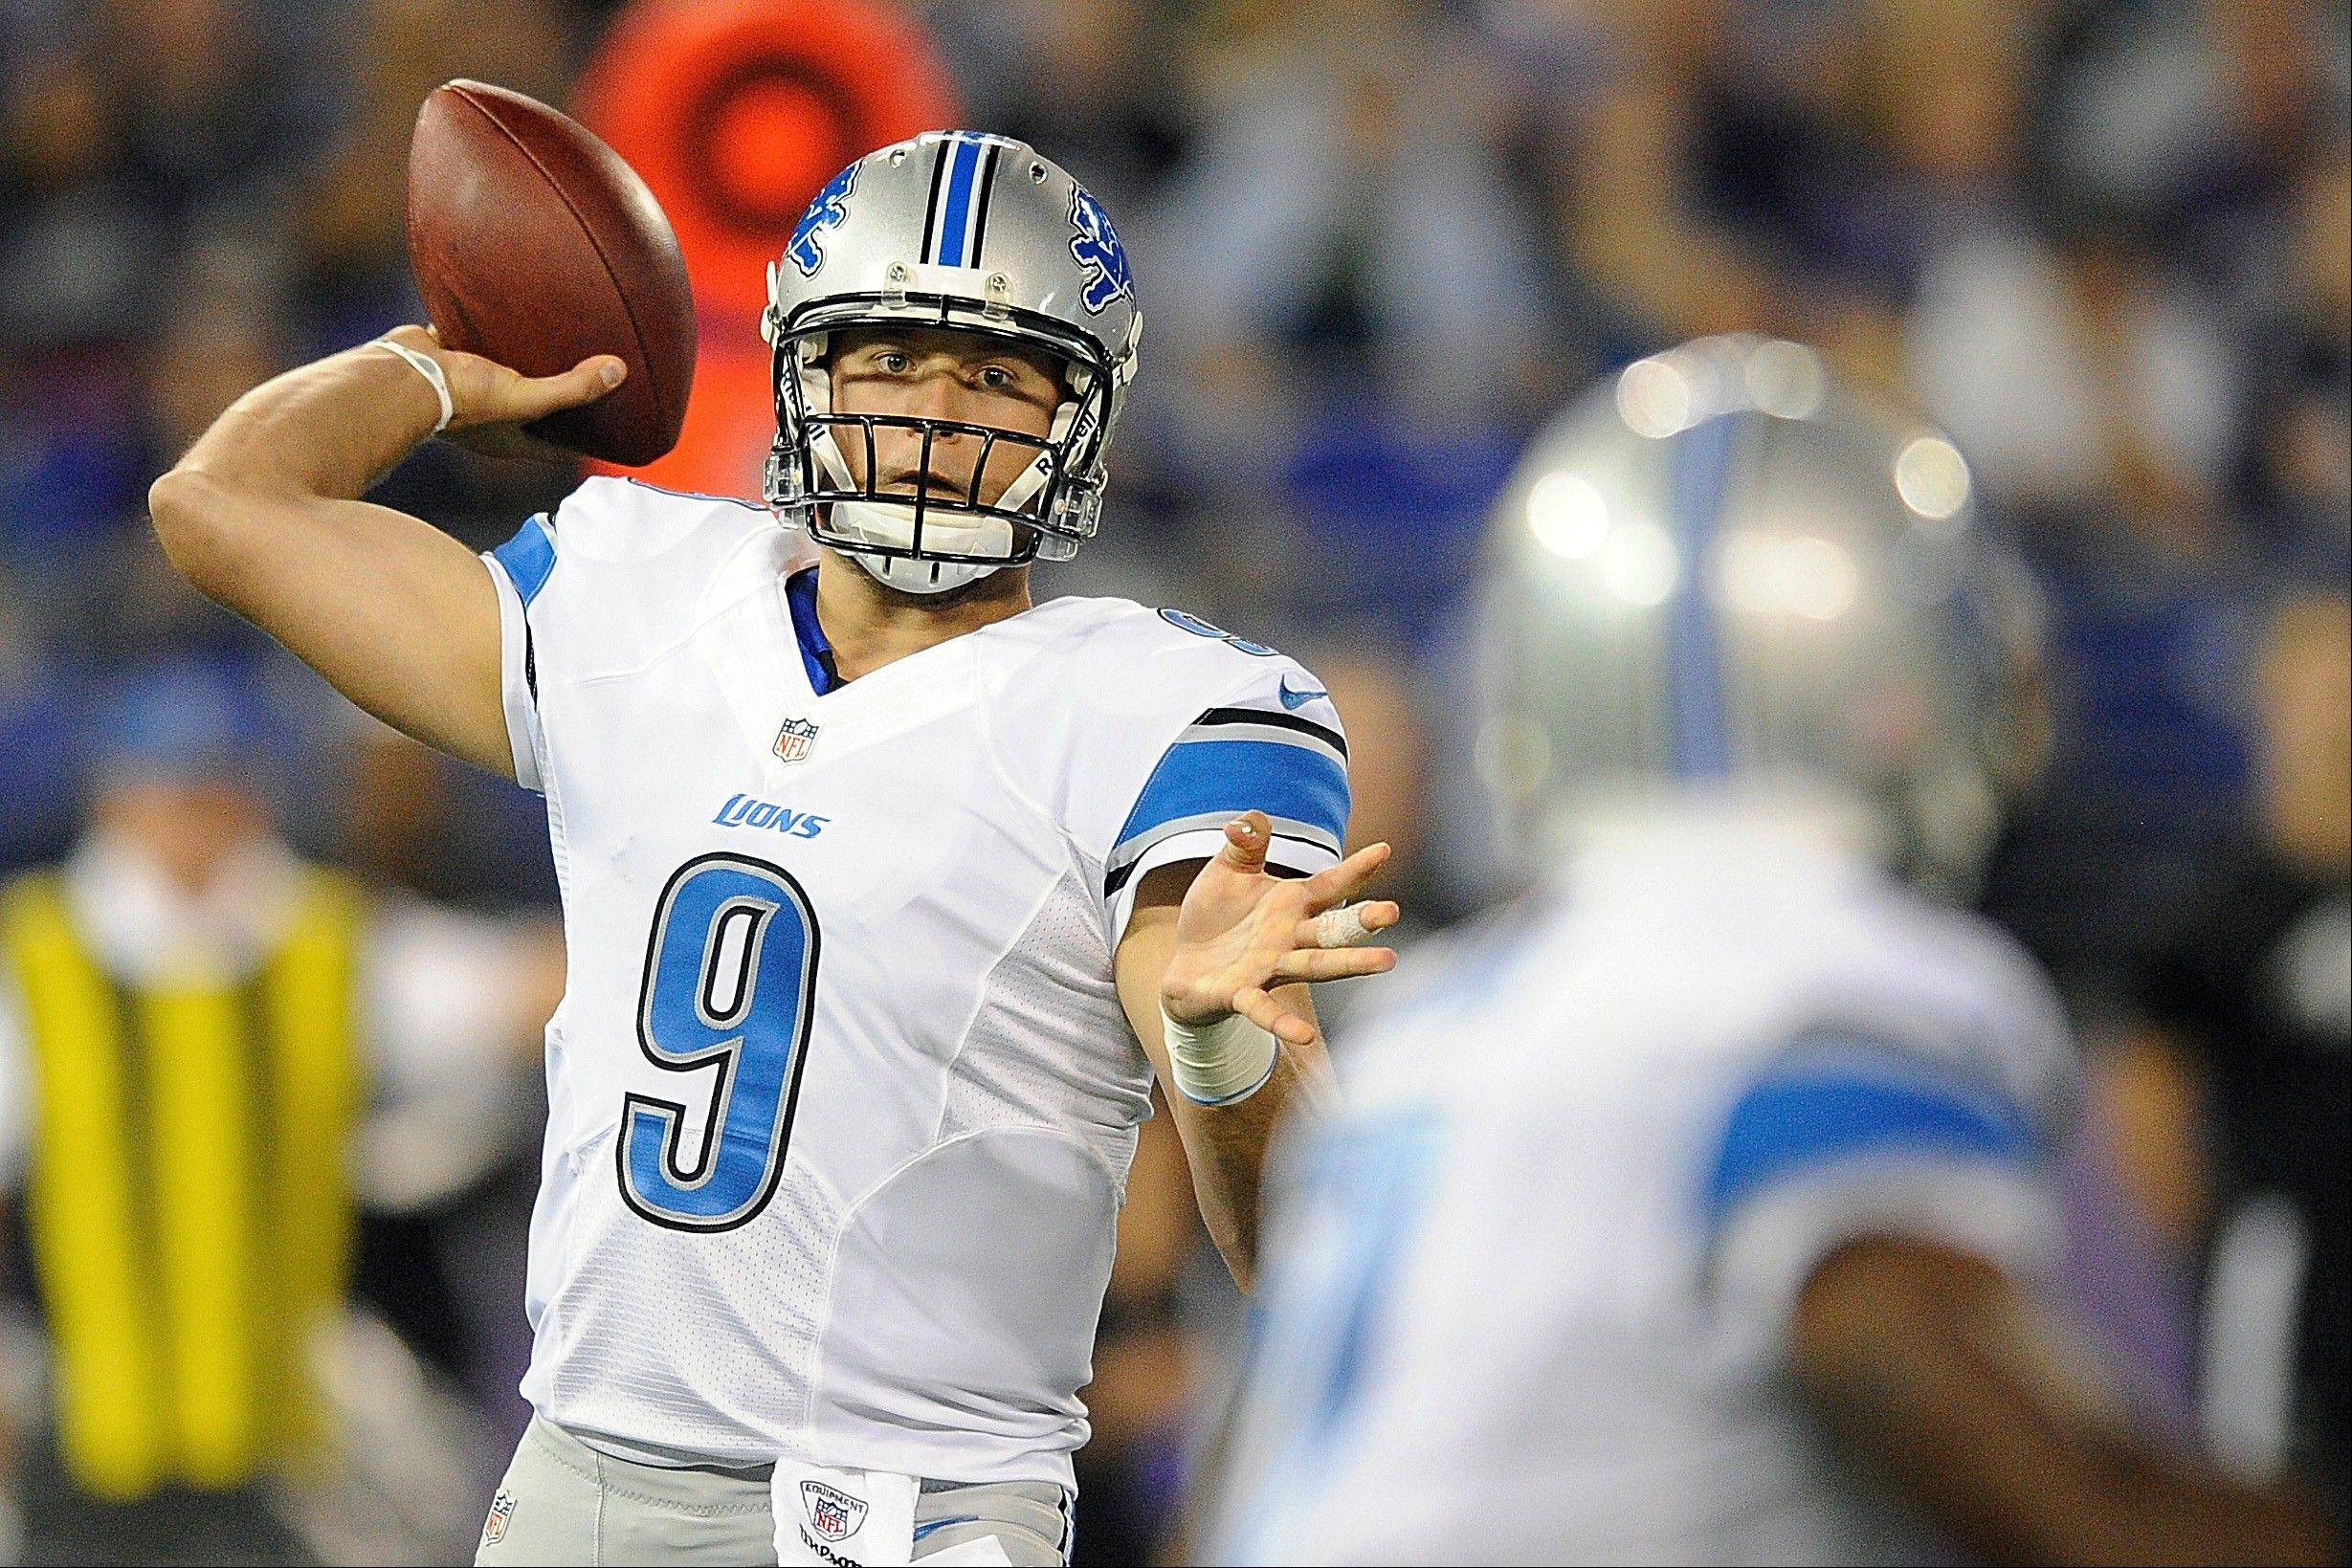 Detroit quarterback Matthew Stafford threw for 184 yards and two touchdowns in four possessions Friday night at home in preseason action against Baltimore.